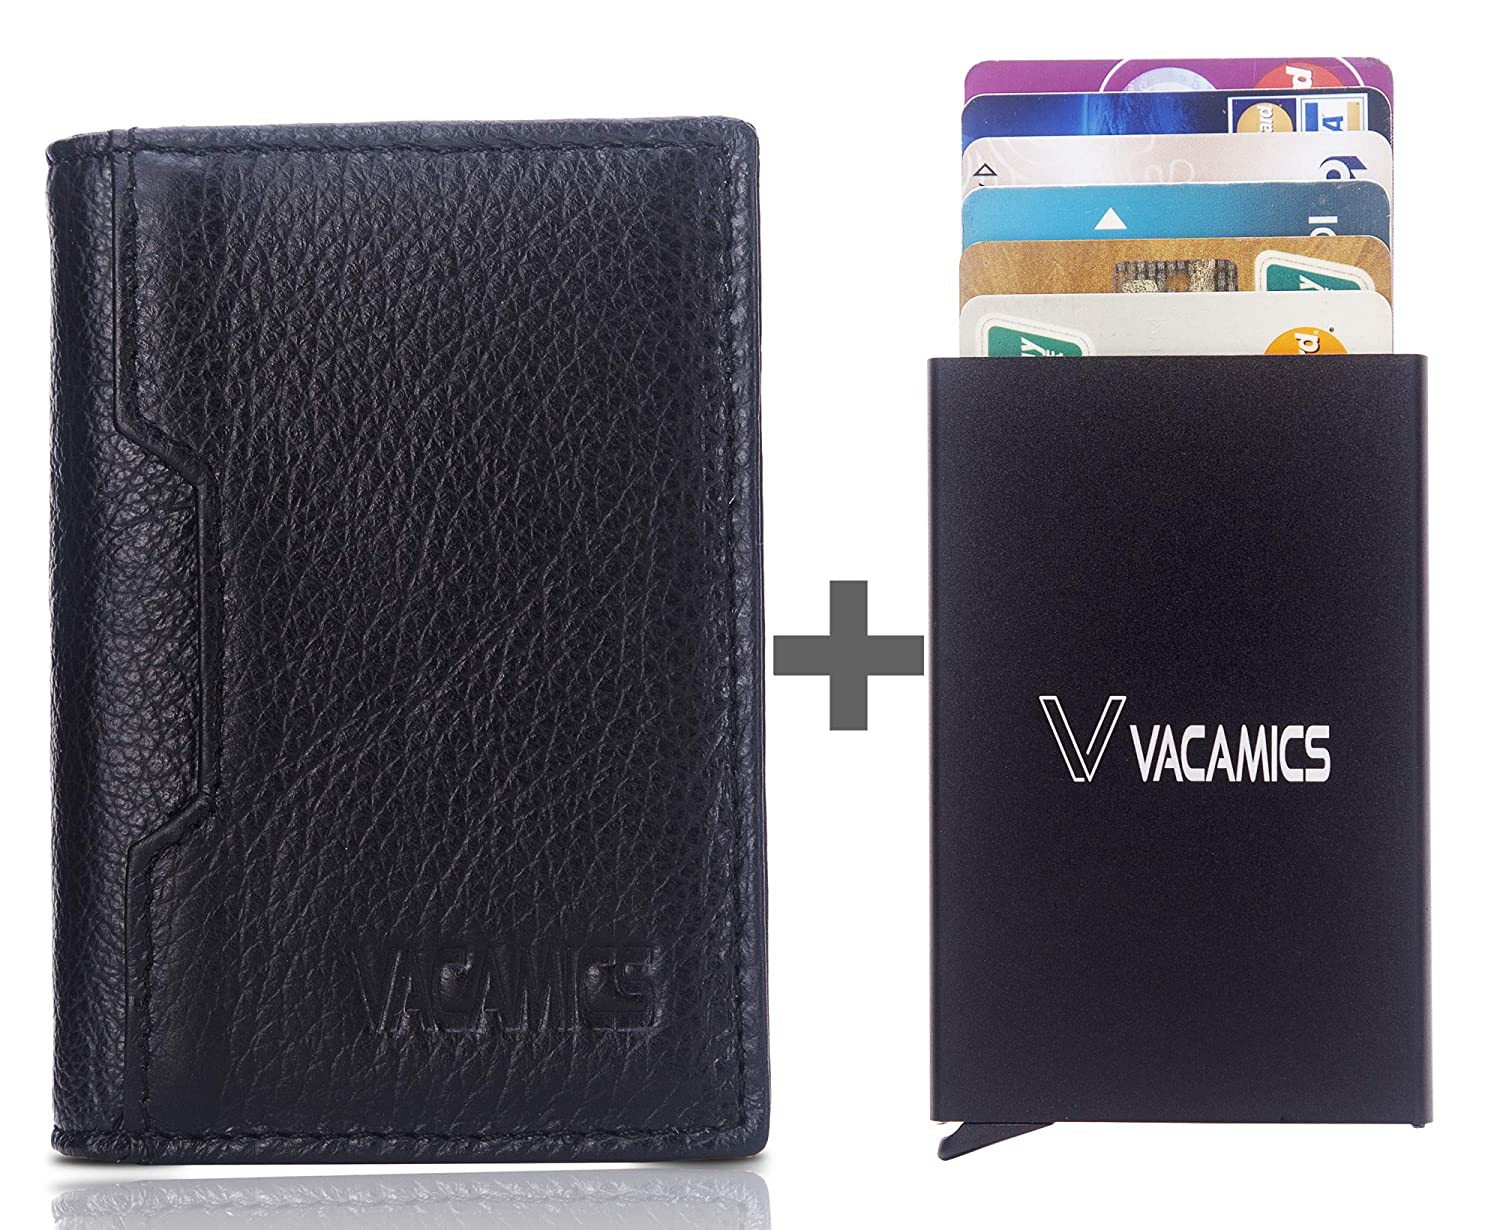 Brown Vacamics RFID Blocking Genuine Leather Minimalist Wallets for Men with Aluminum Card Holder